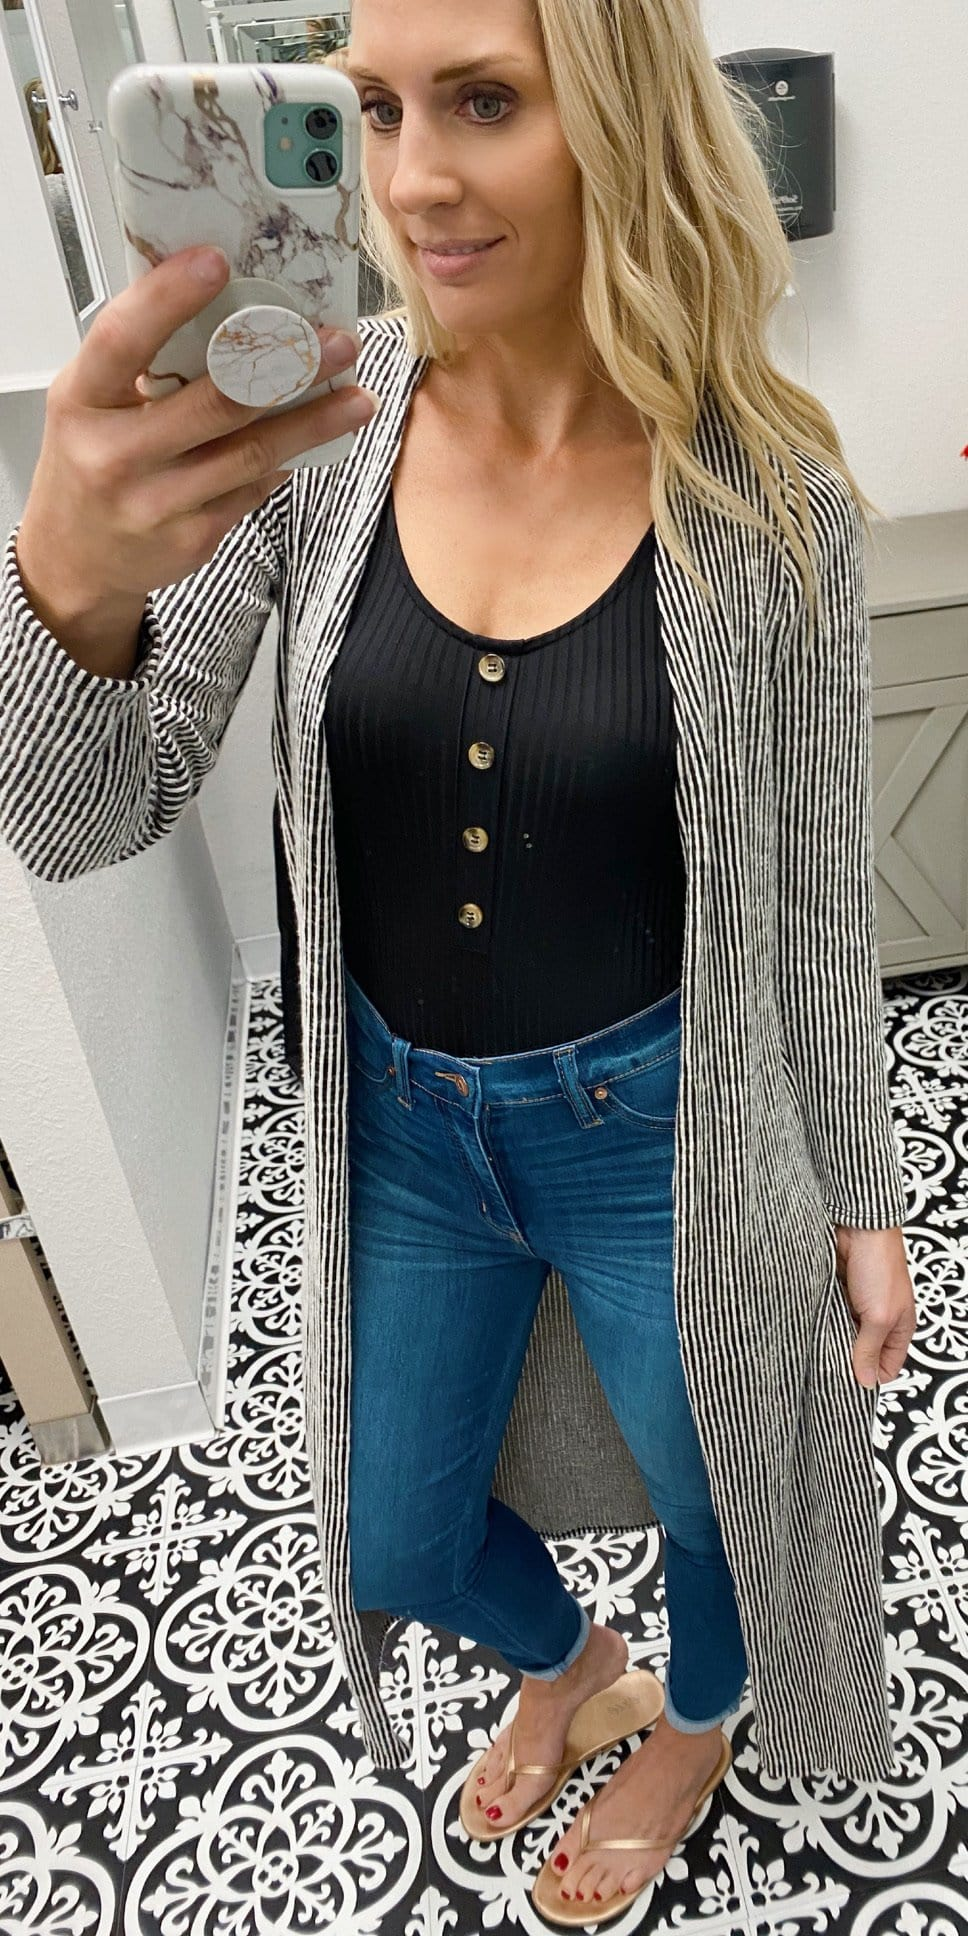 TOPMAXX PINSTRIPED SOFT KNIT LONG SLEEVE DUSTER-BLACK/WHITE - Infinity Raine